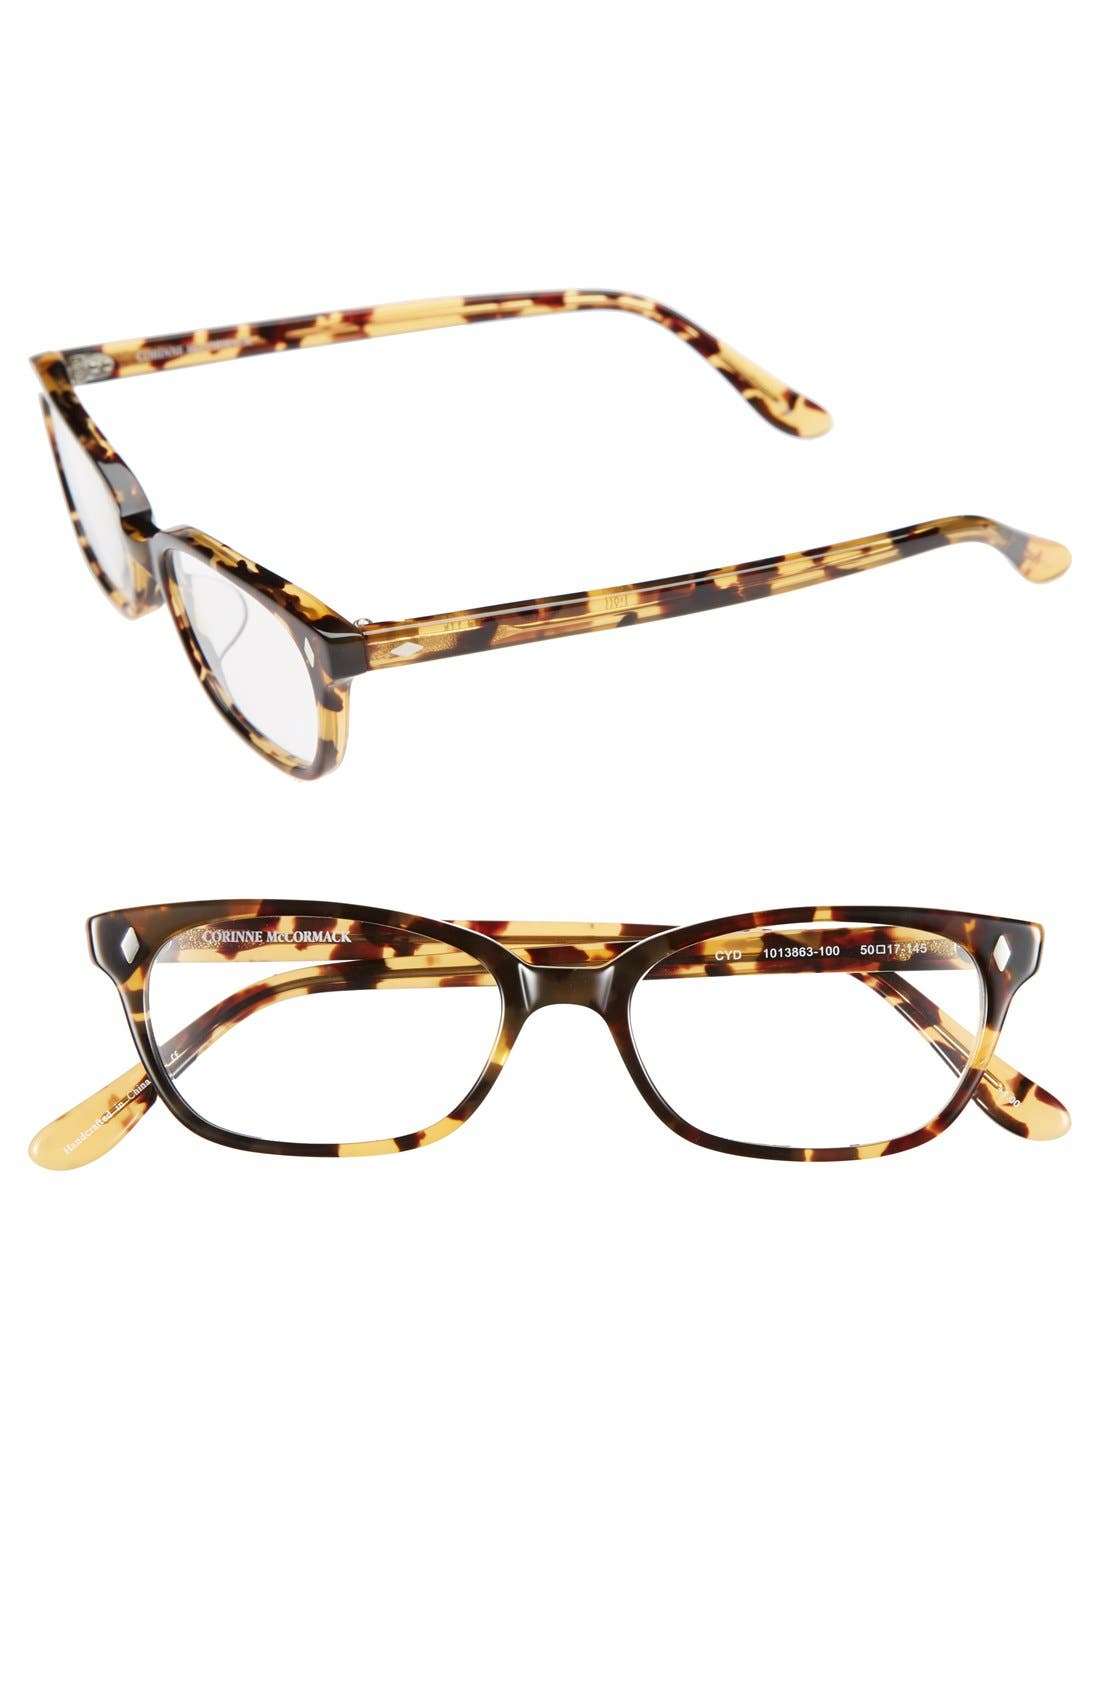 Main Image - Corinne McCormack 'Cyd' 50mm Reading Glasses